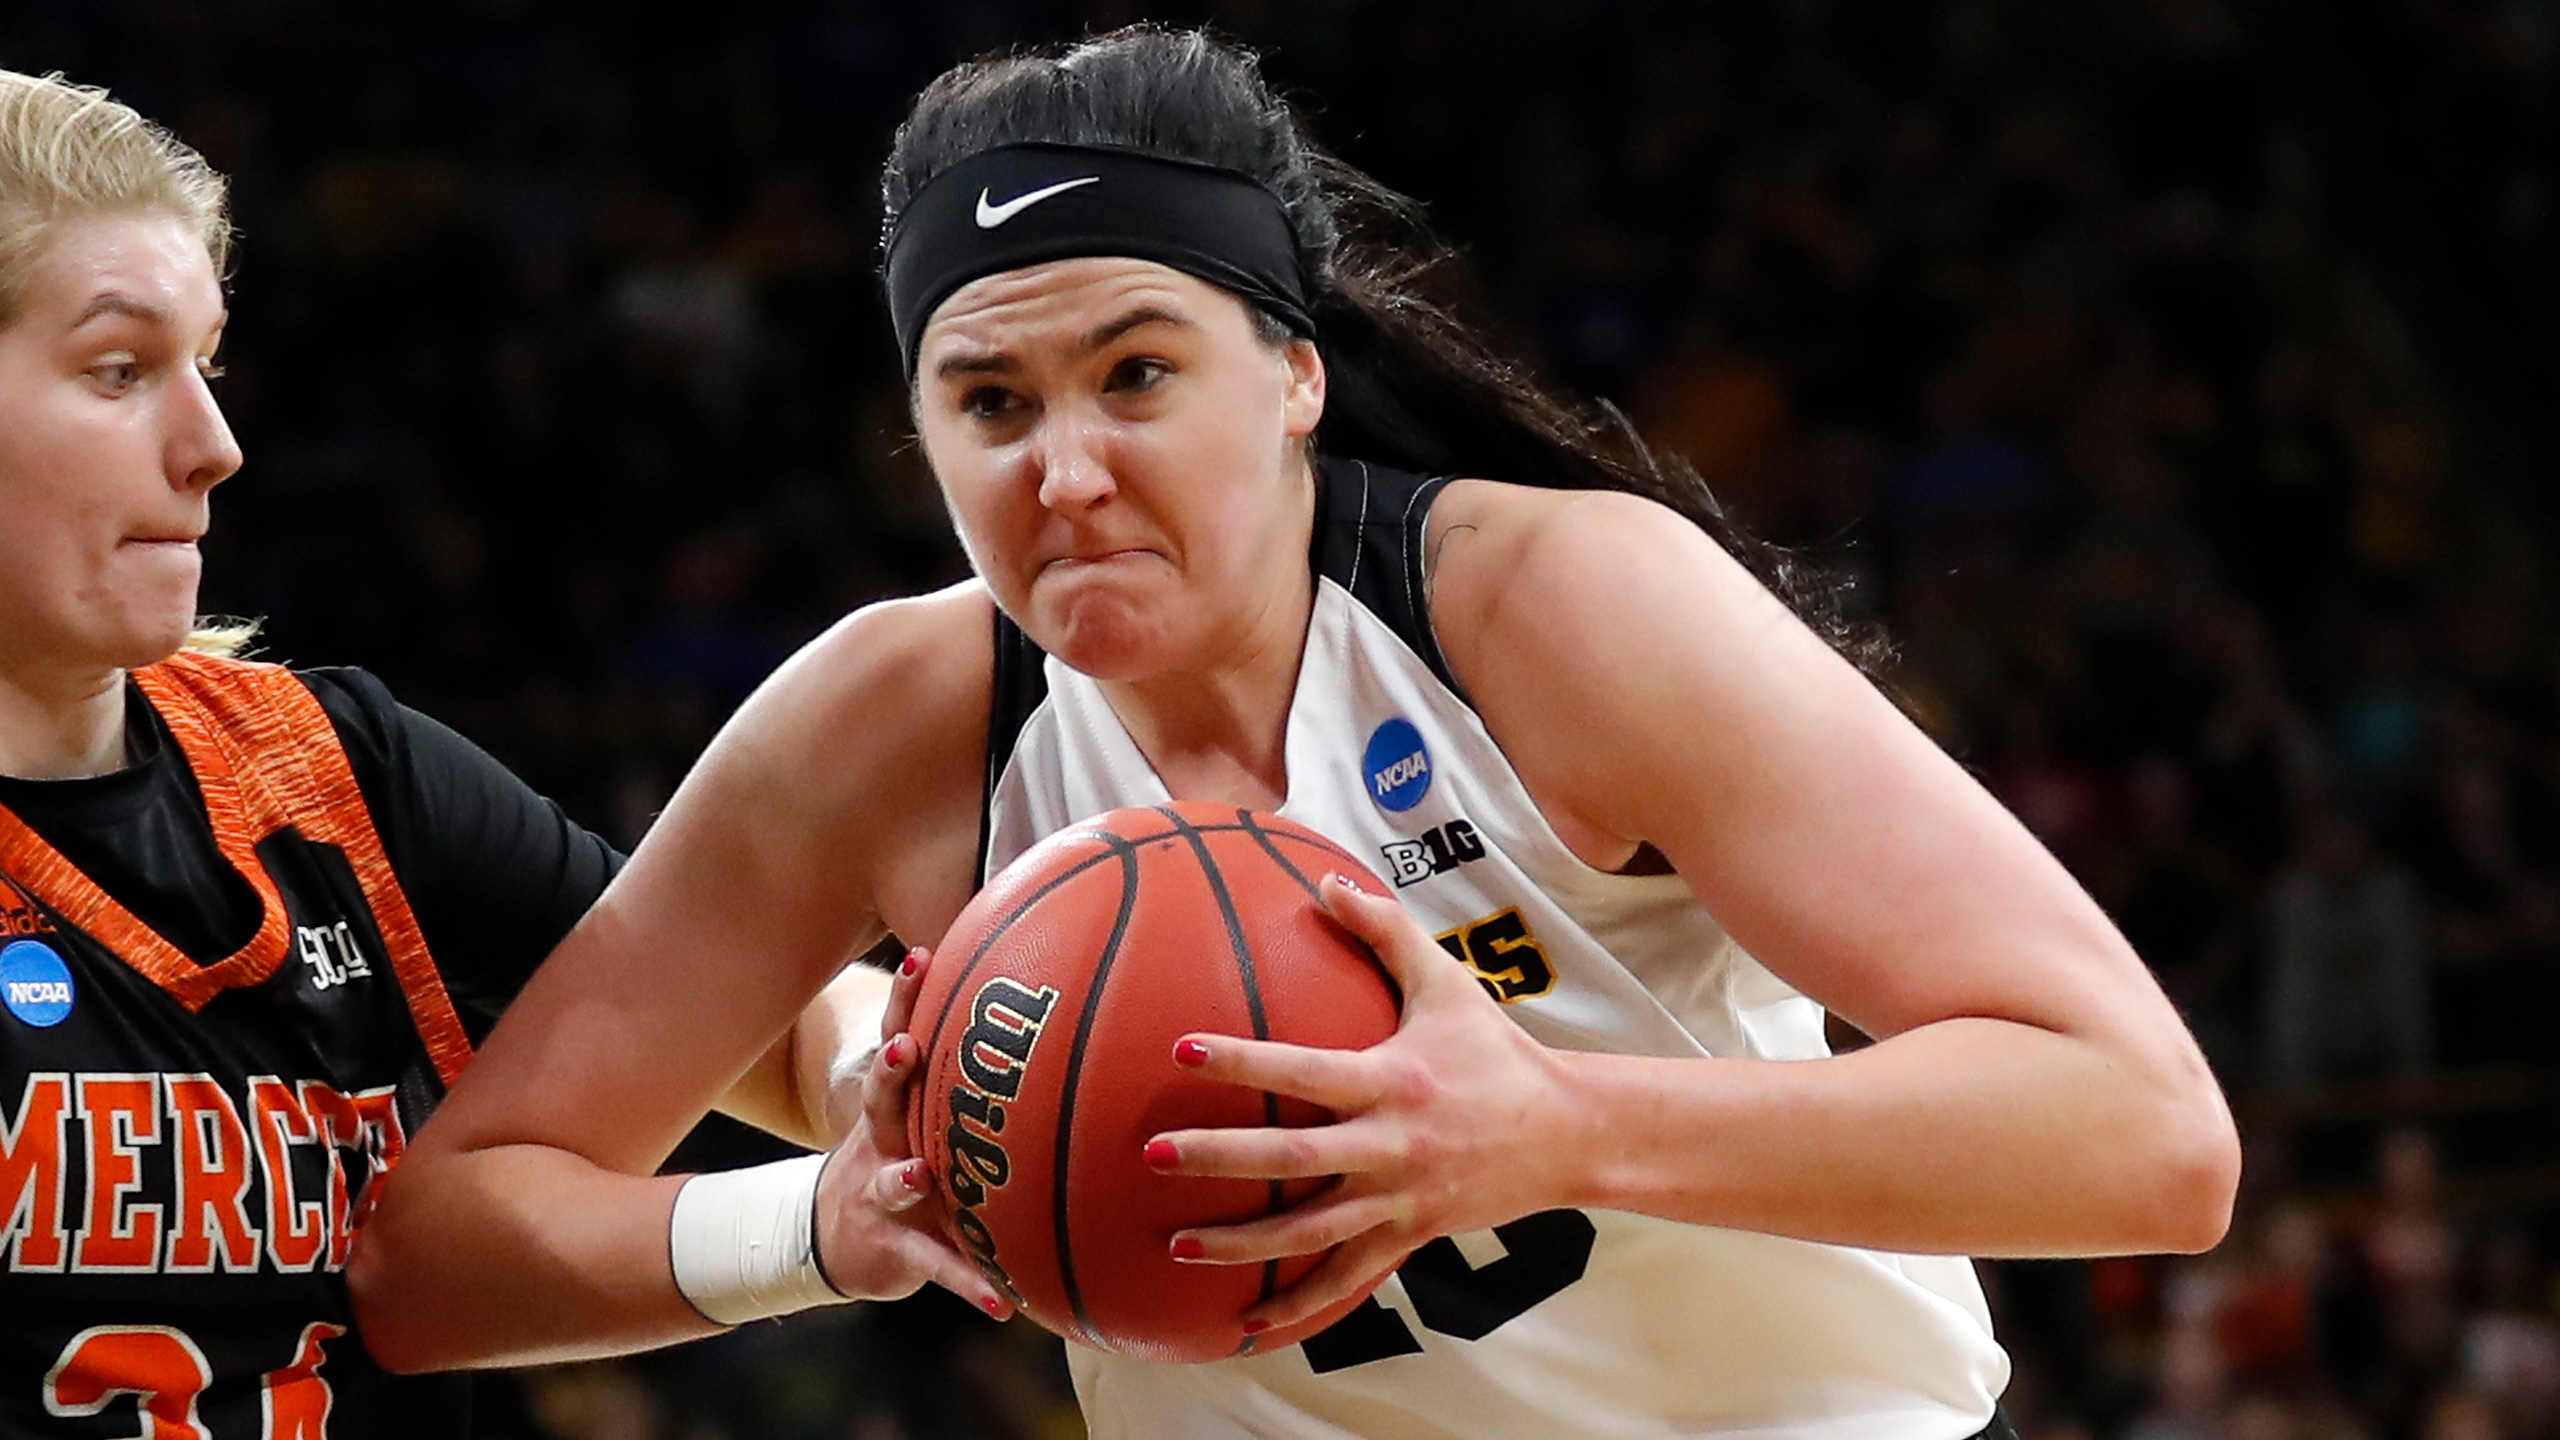 #7 Missouri vs. #2 Iowa (Second Round) (NCAA Women's Basketball Championship)